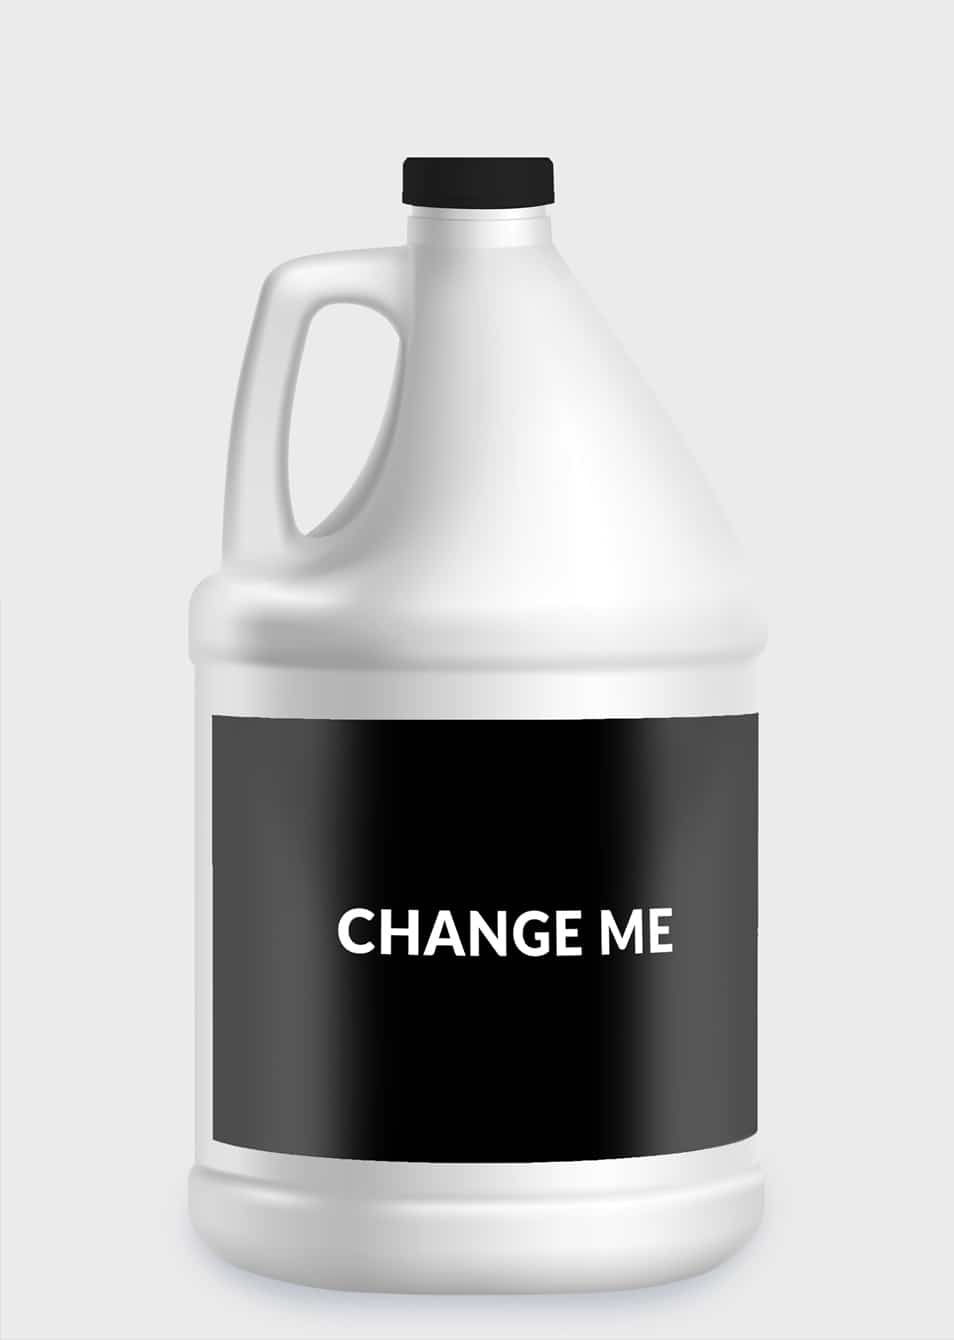 Plastic Chemical 5L Bottle PSD Mockup